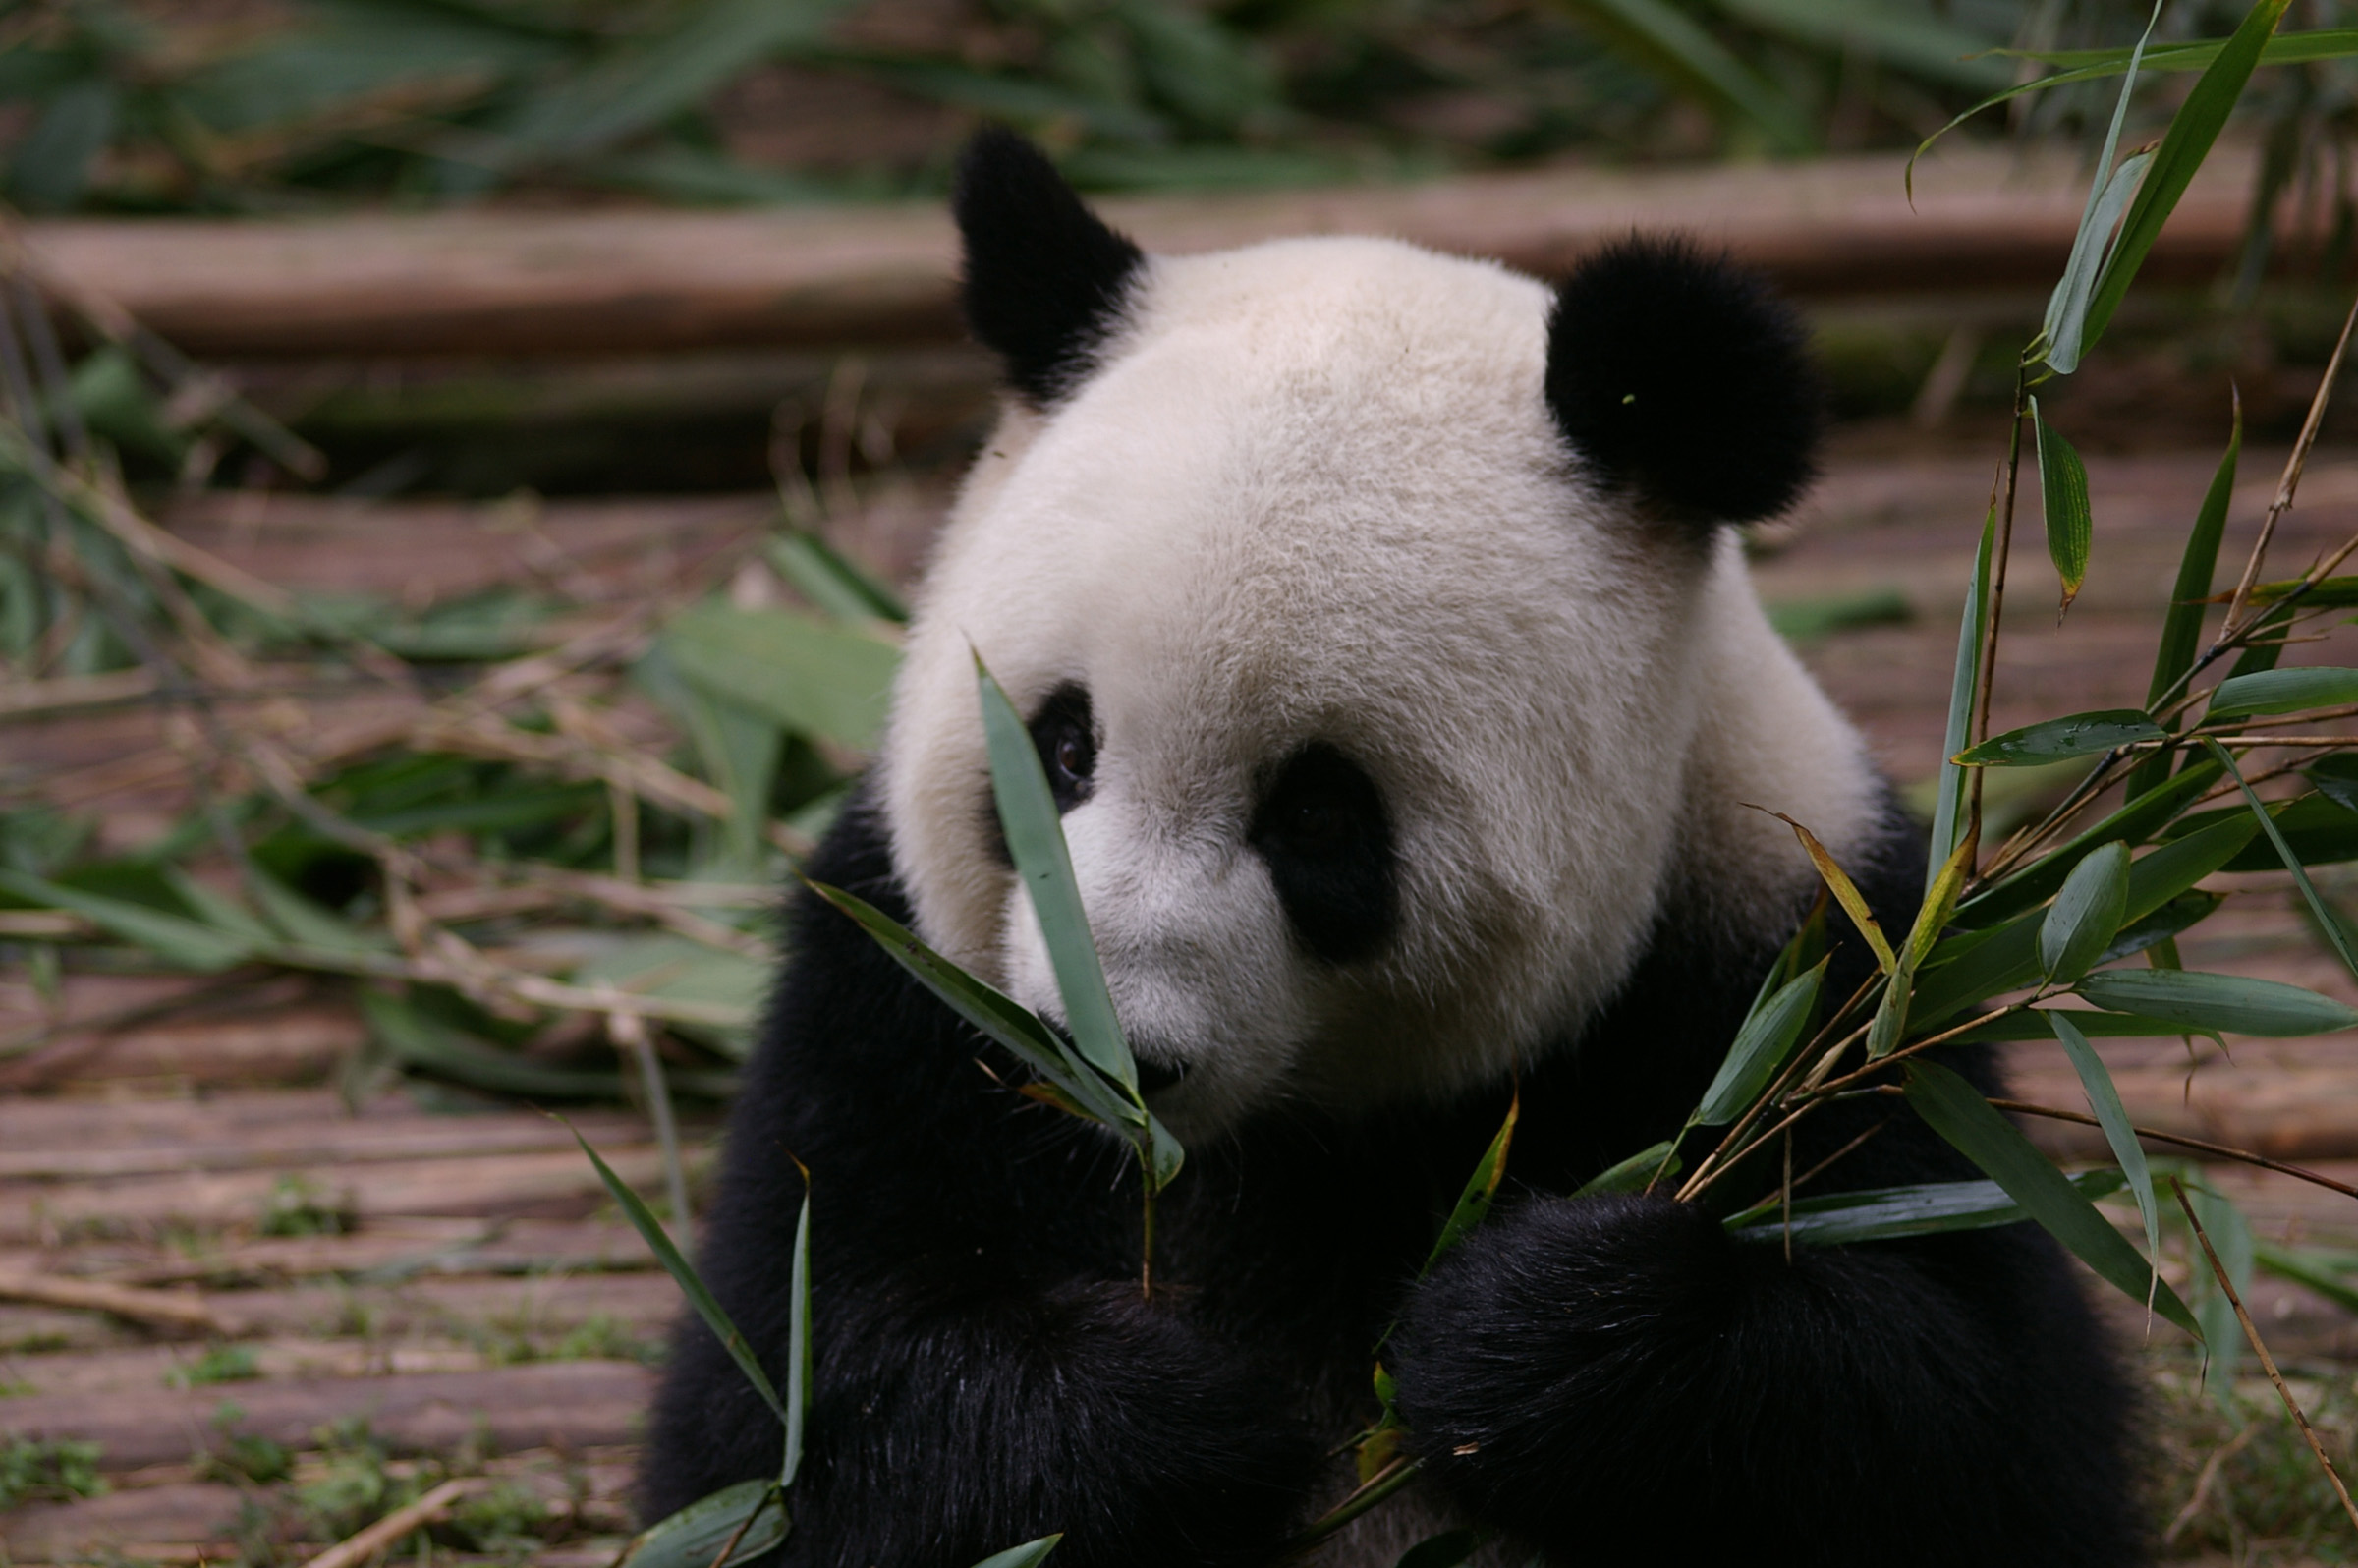 China Animal Wildlife - Close up Black and White Panda Eating Bamboo Shoots at the Zoo.